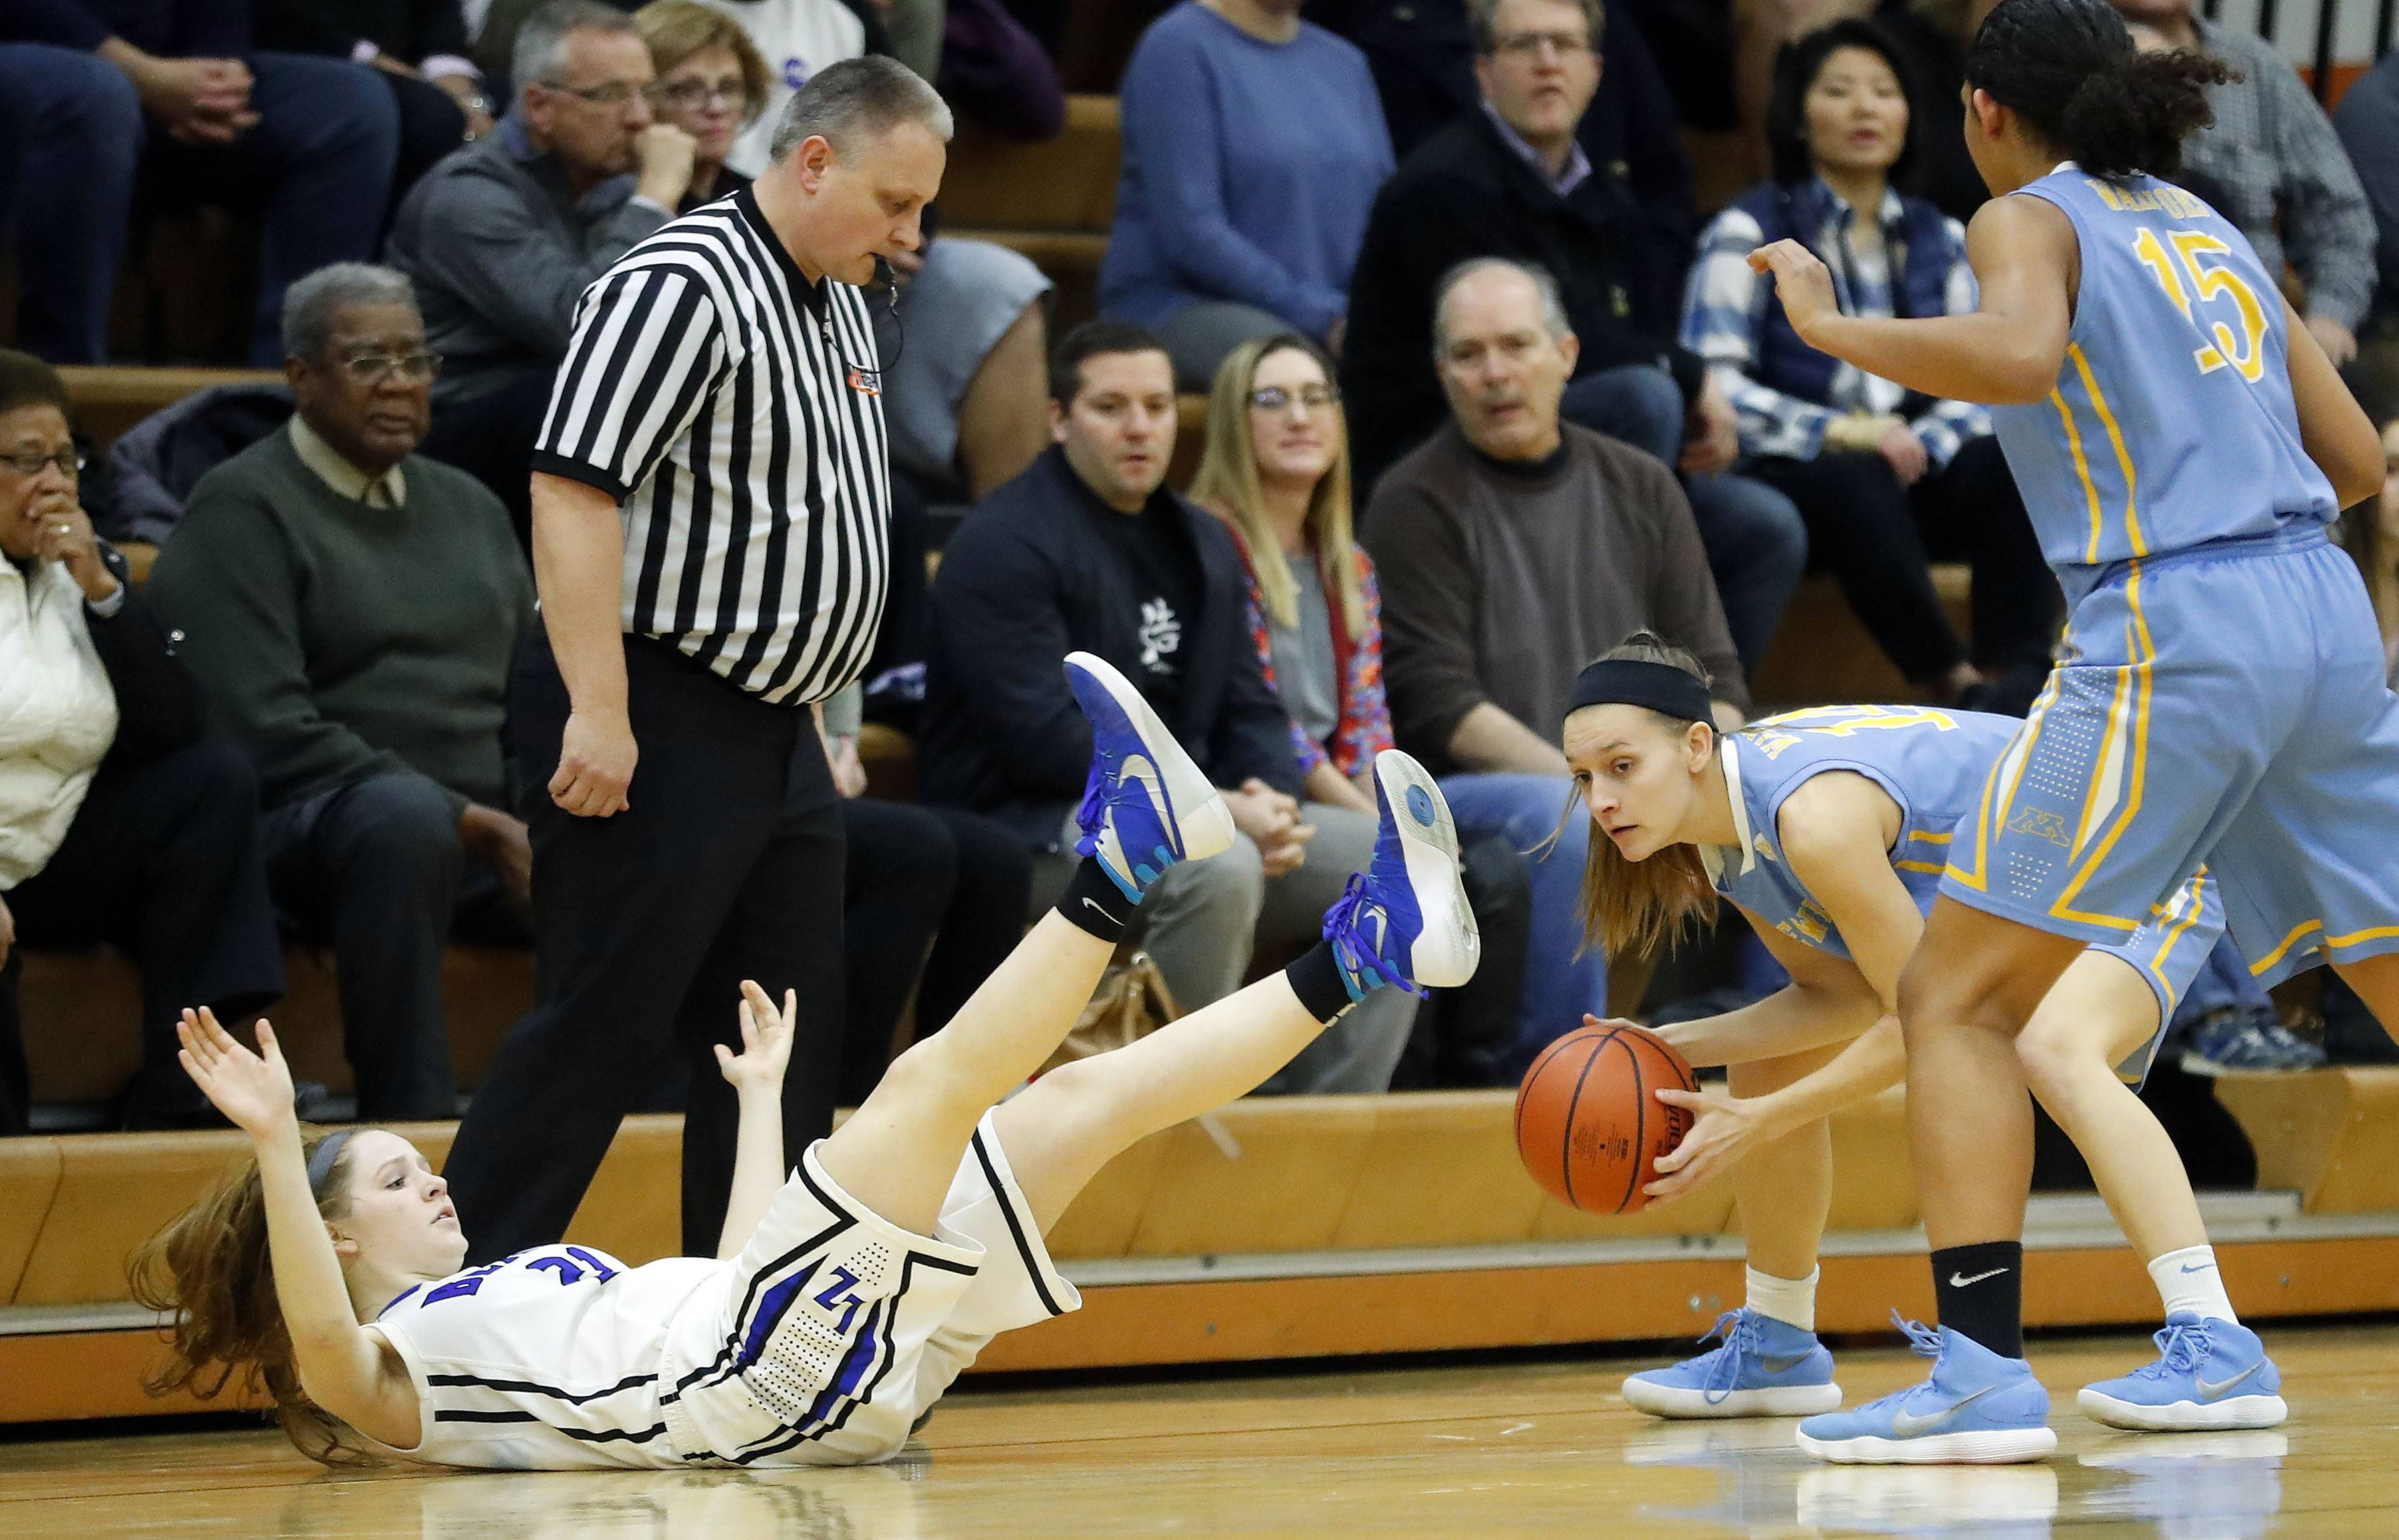 Maine West's Catherine Johnson, right, steals the ball from Lake Zurich's Anna Biergans during the Class 4A Hersey supersectional in Arlington Heights on Monday.